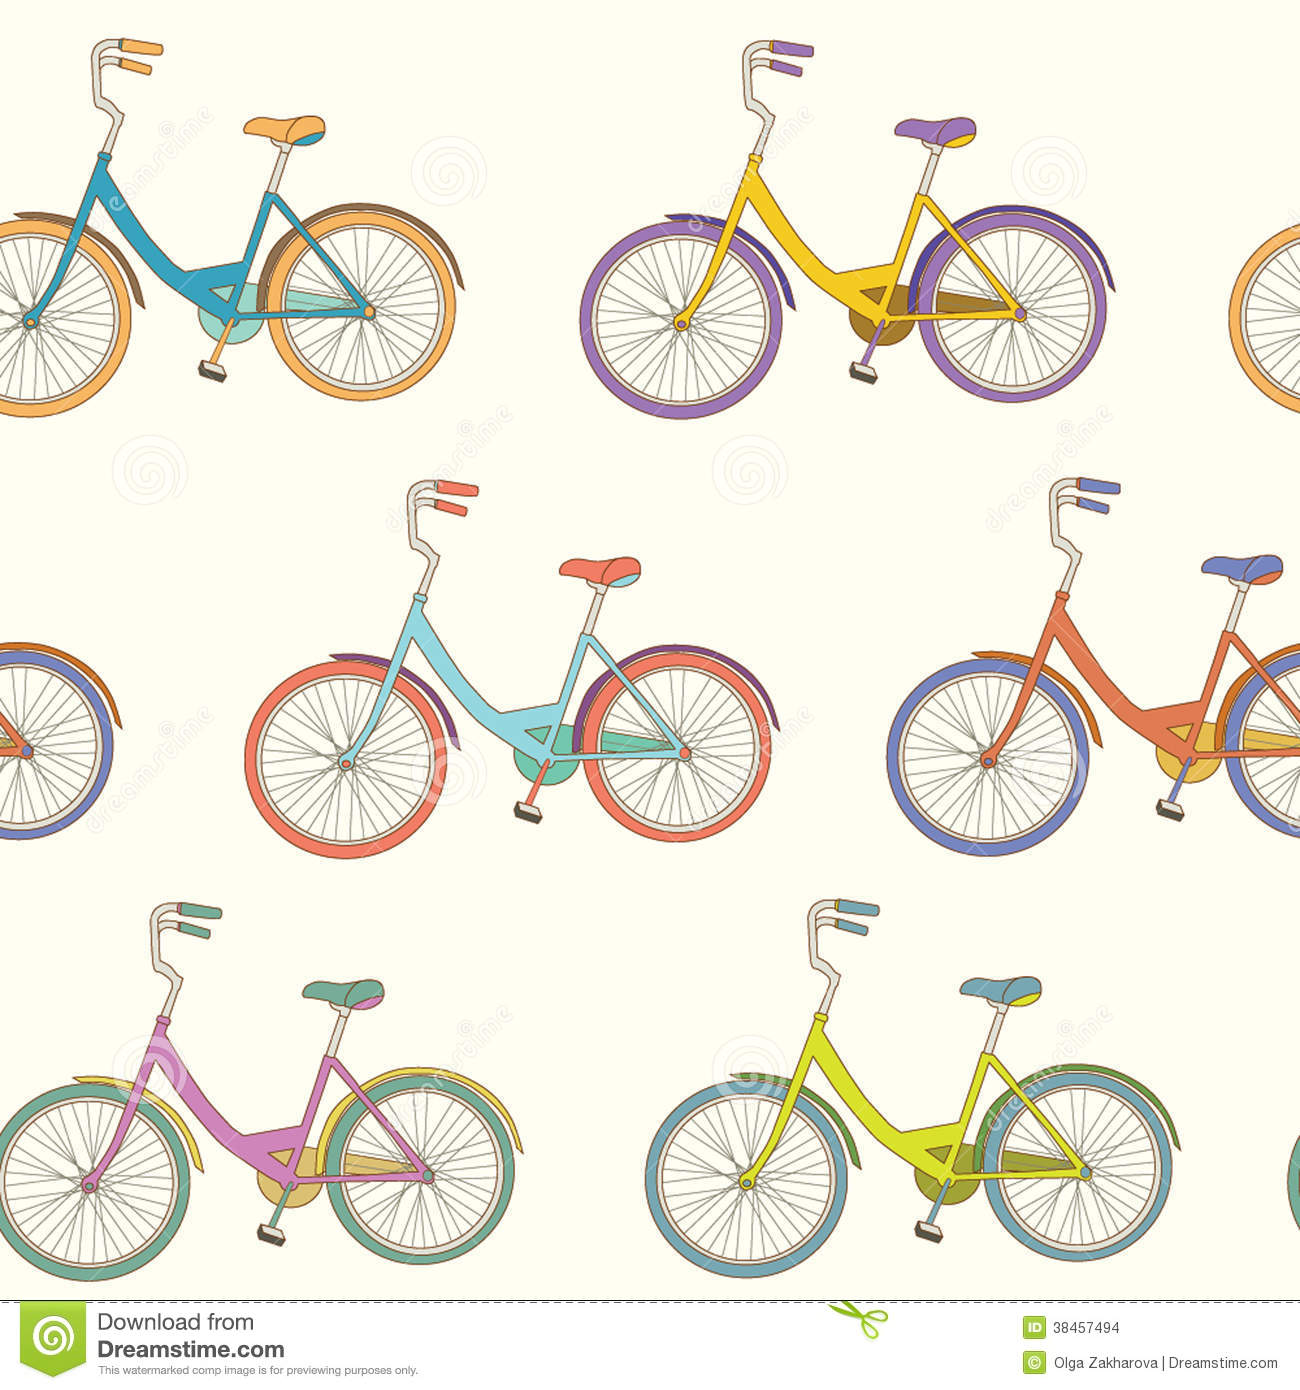 Cute bicycle illustration